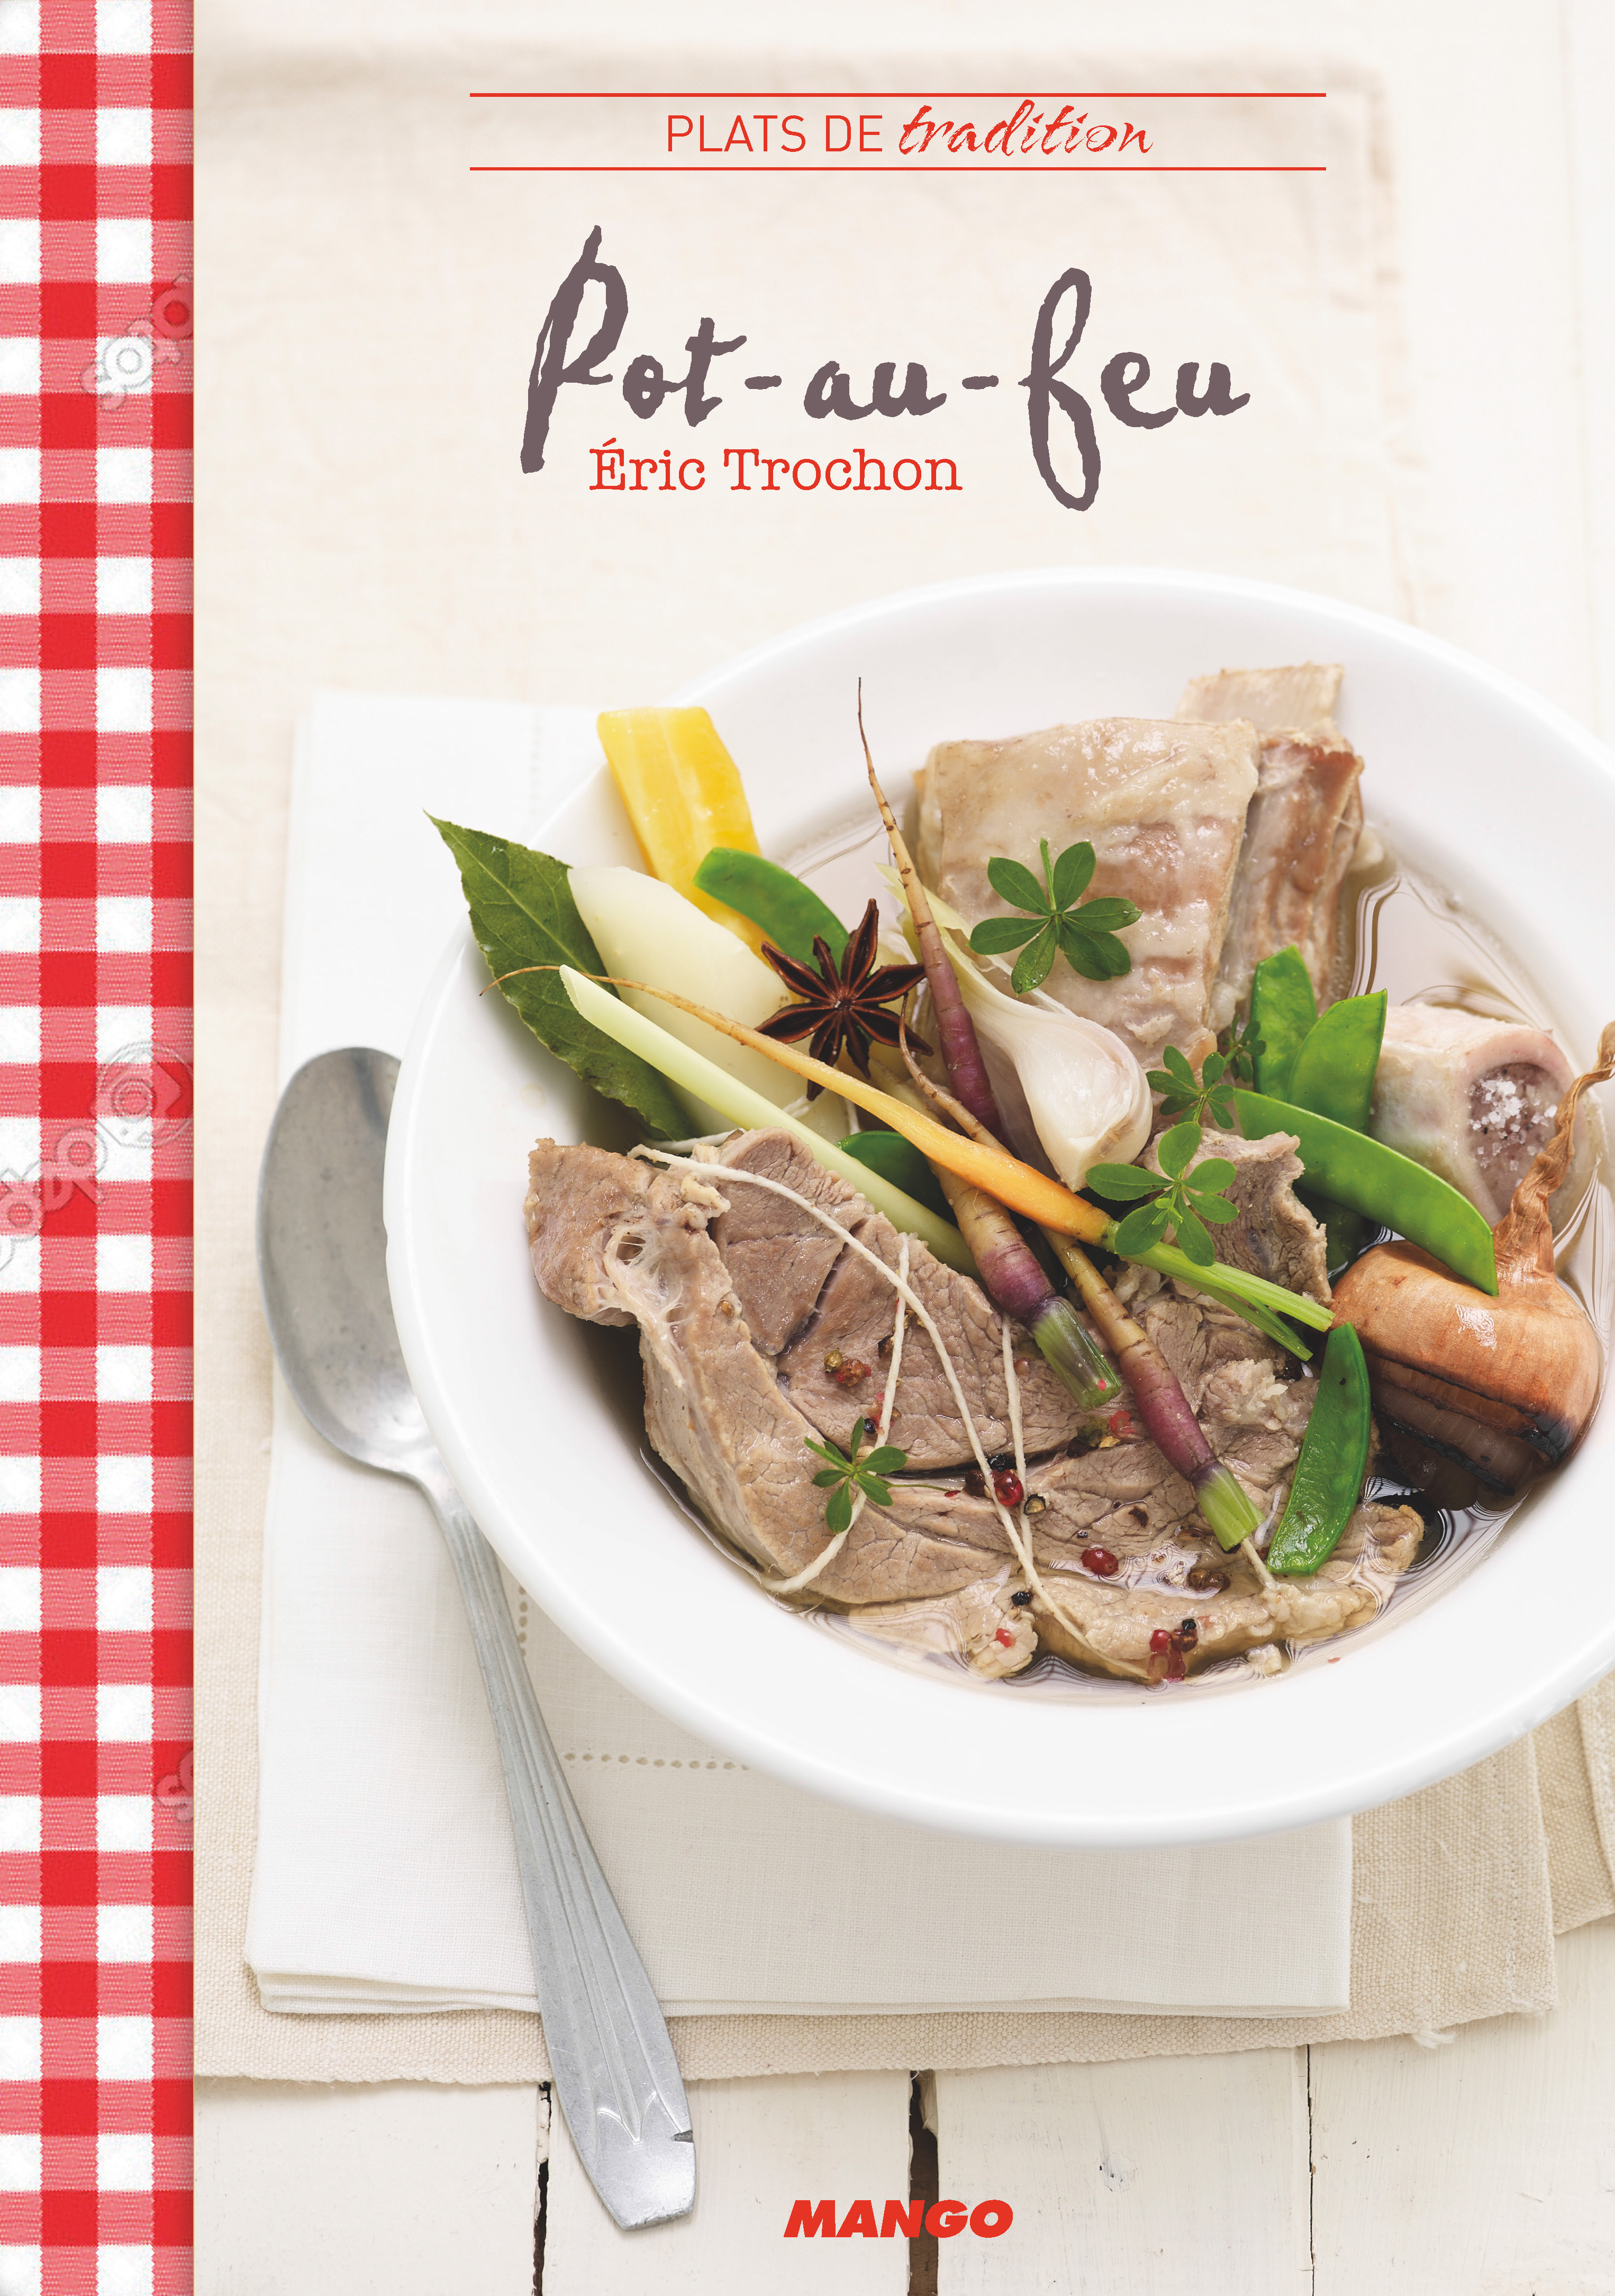 UN PLAT DE TRADITION,UN CHEF POT AU FEU